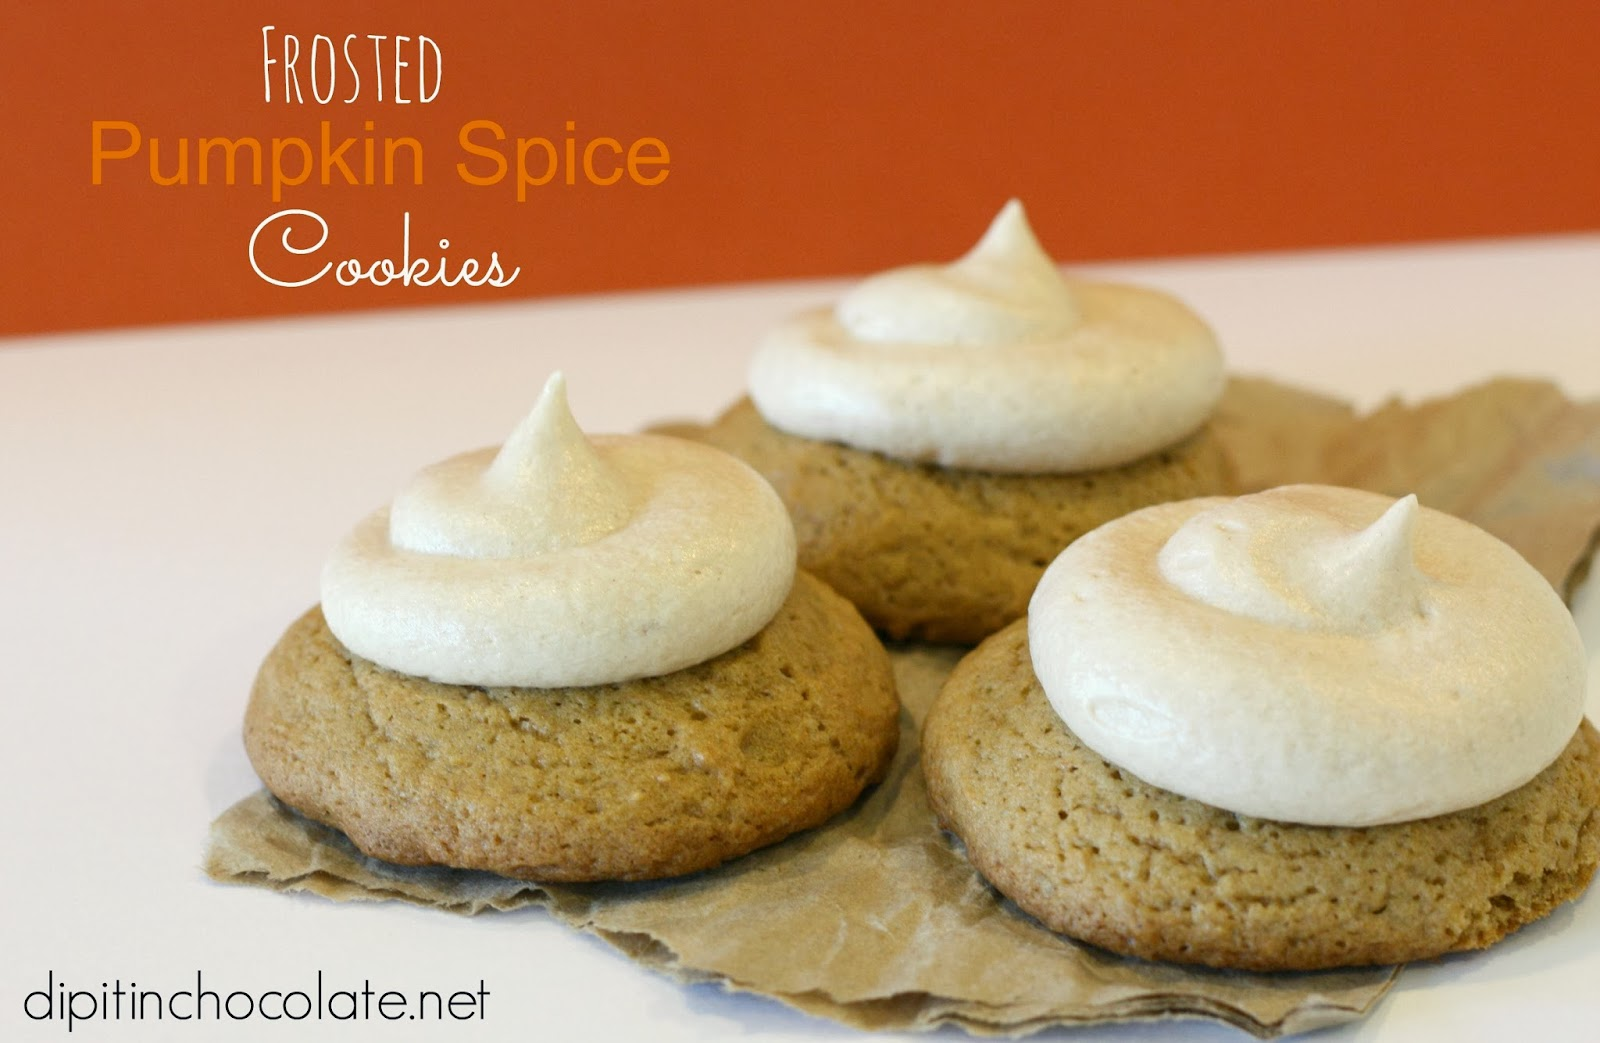 Frosted Pumpkin Spice Cookies ~ Dip it in Chocolate